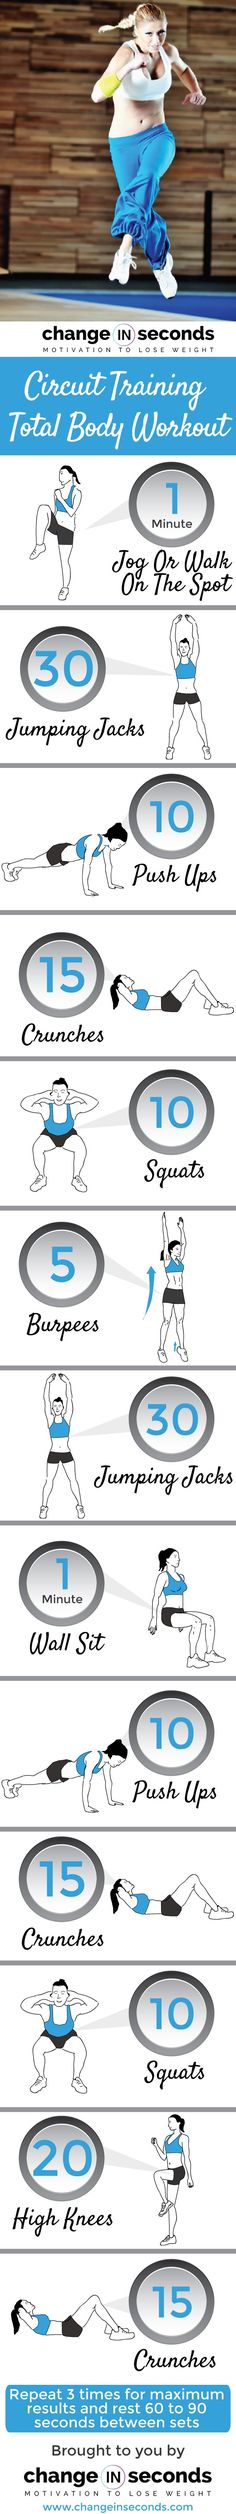 Circuit Training Total Body Workout (Download PDF) http://www.changeinseconds.com/circuit-training-total-body-workout/